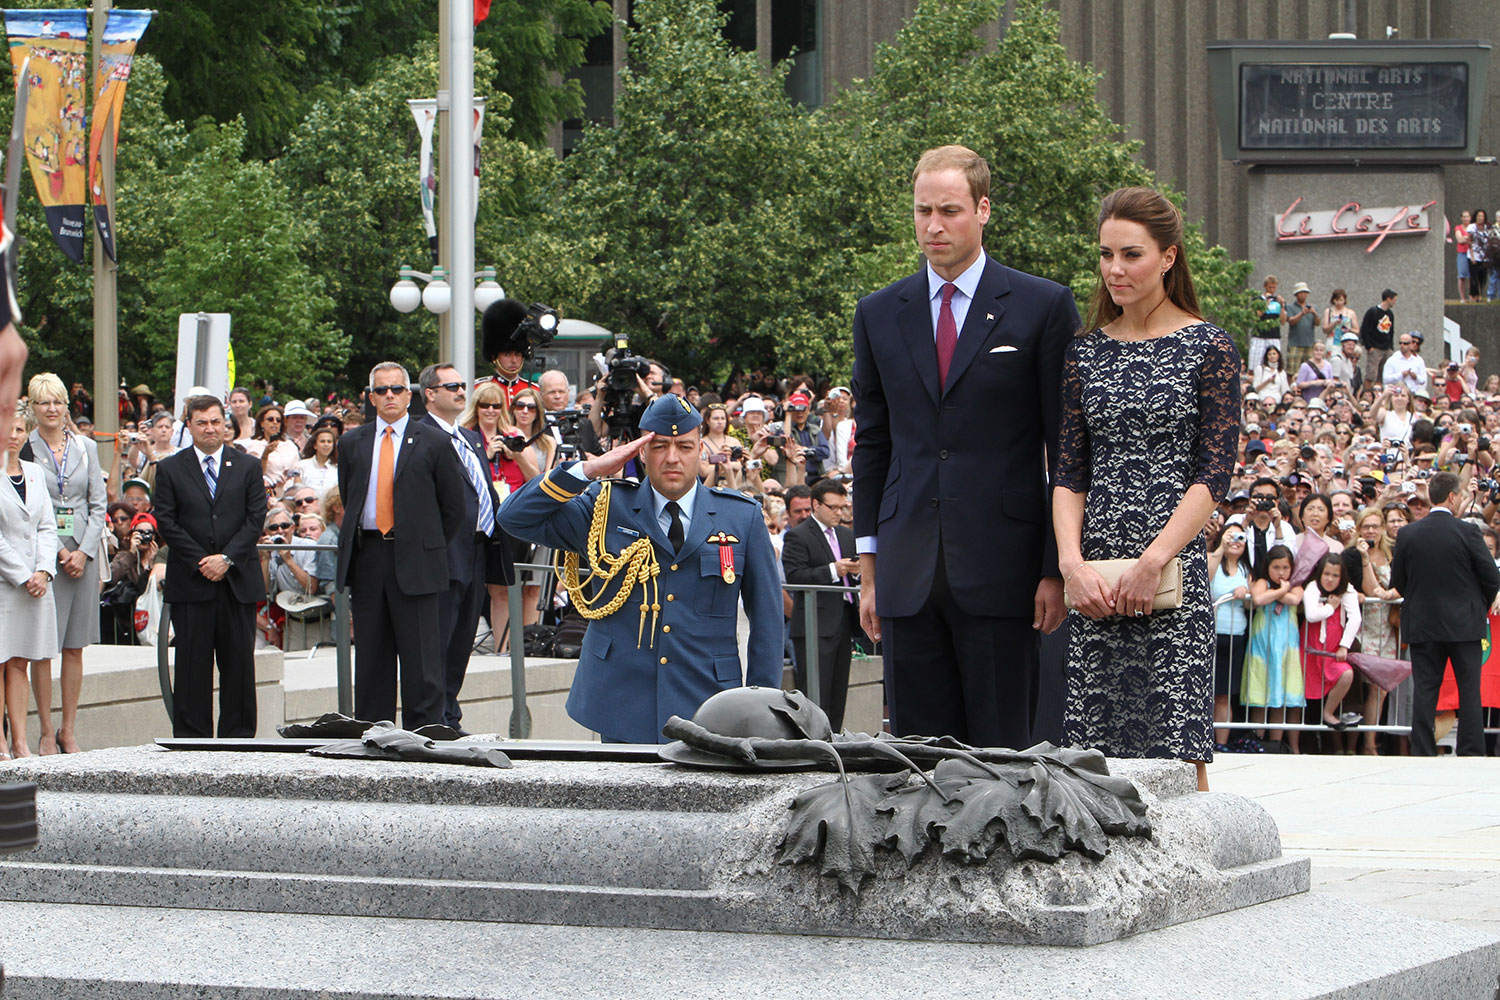 View enlarged image of the Duke and Duchess of Cambridge—Prince William and Catherine Middleton